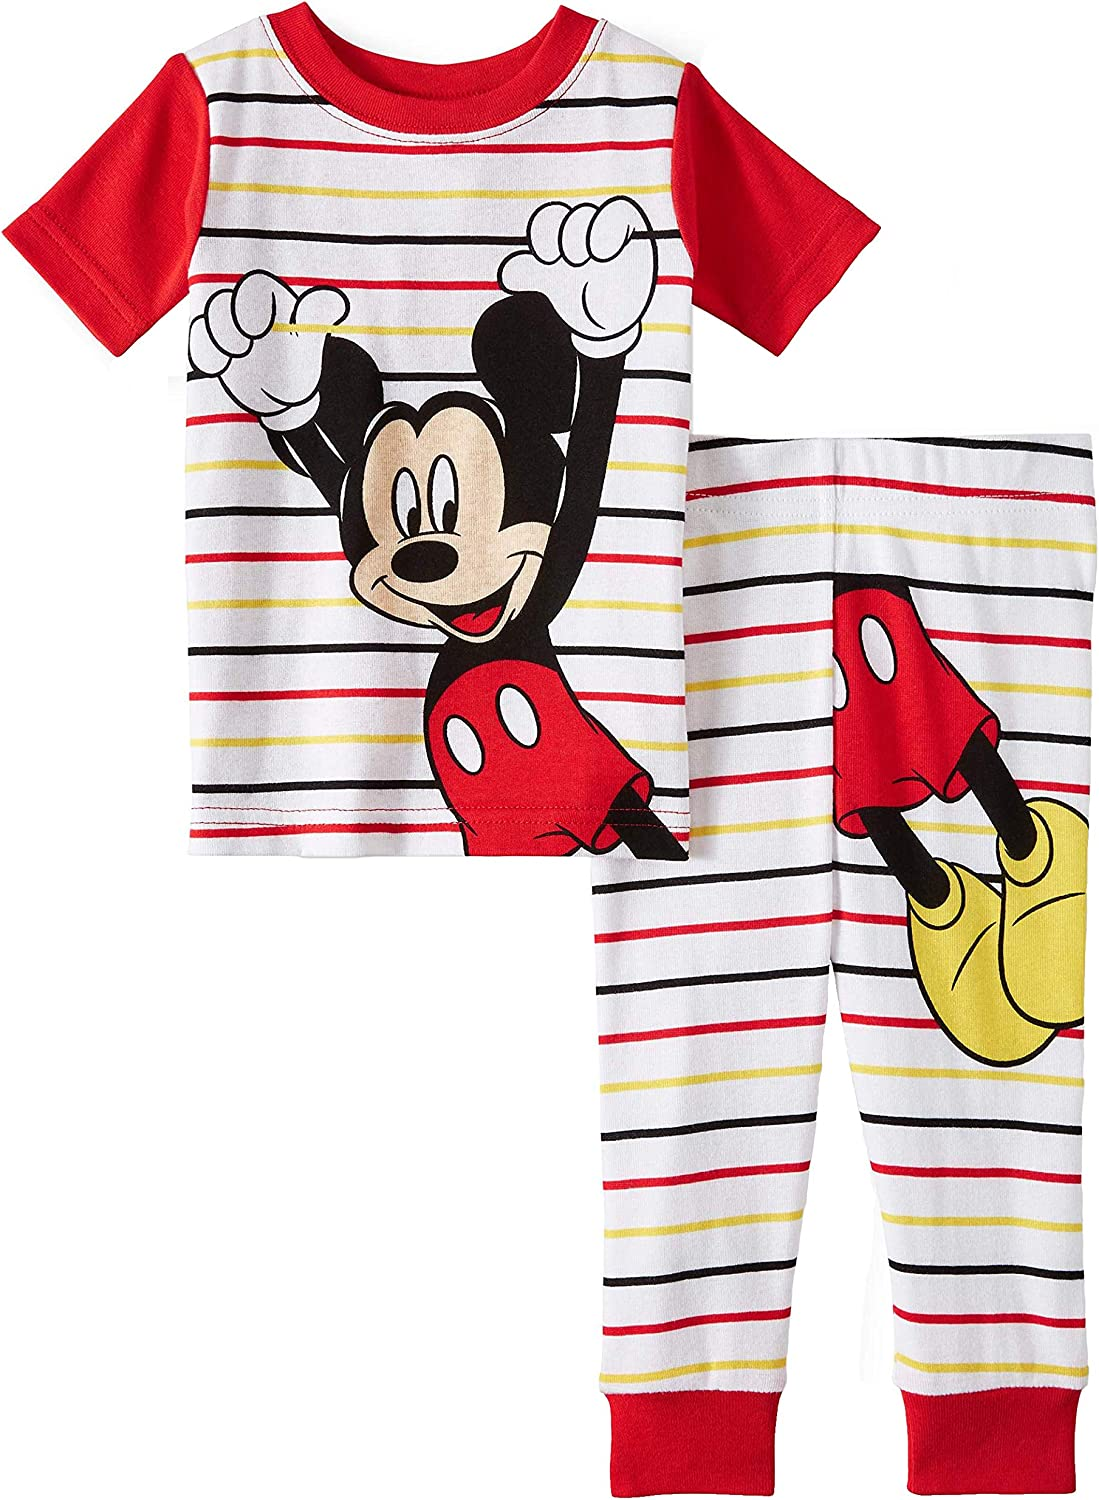 Mickey Mouse Disney Boys 2 Piece Comfy Sleepwear Pajama Set